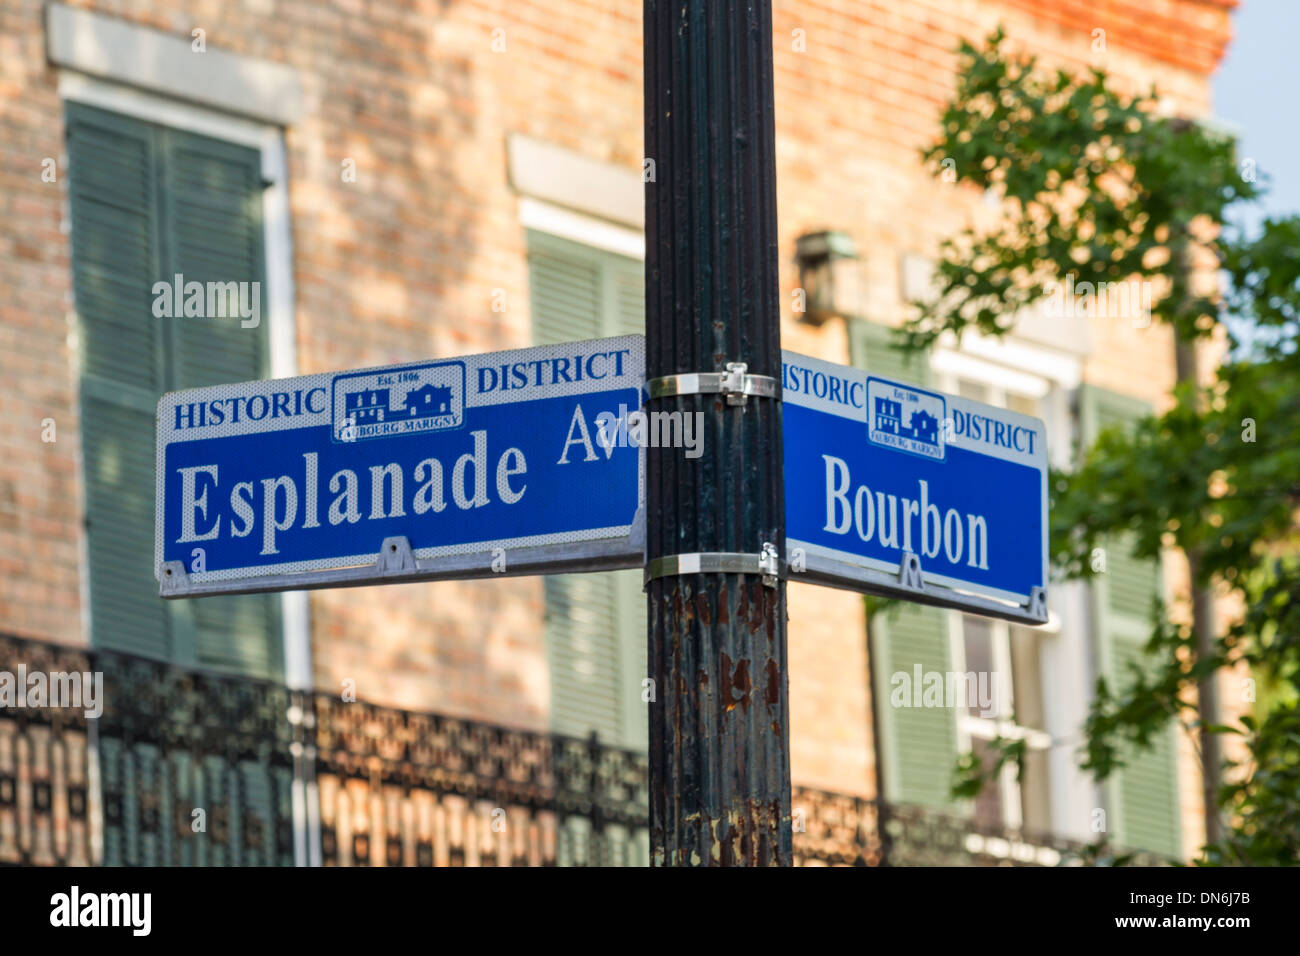 A street sign at the corner of Bourbon Street and Esplanade Avenue in the French Quarter of New Orleans, Louisiana - Stock Image